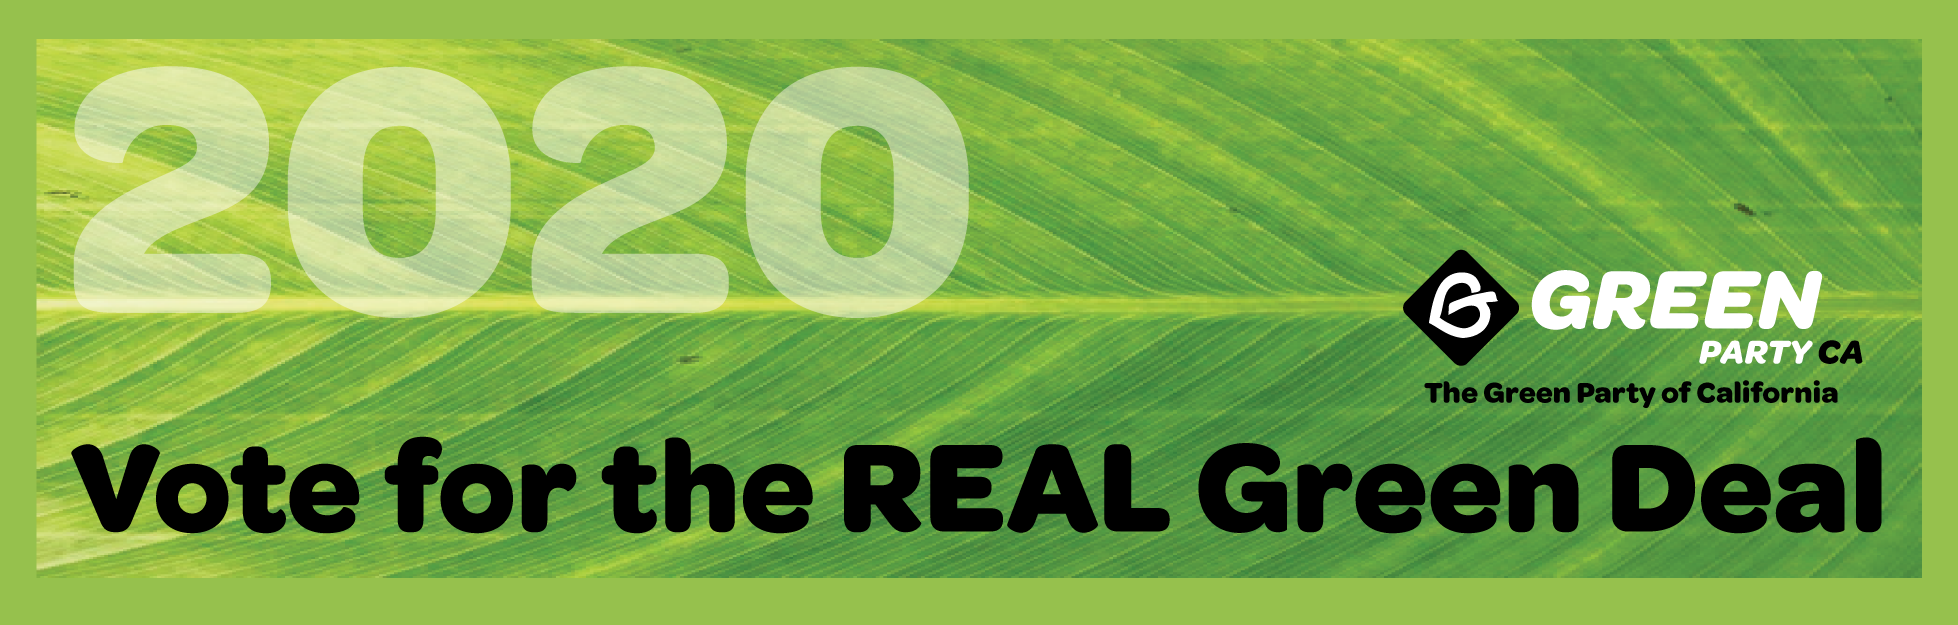 2020 Vote For The Real Green Deal